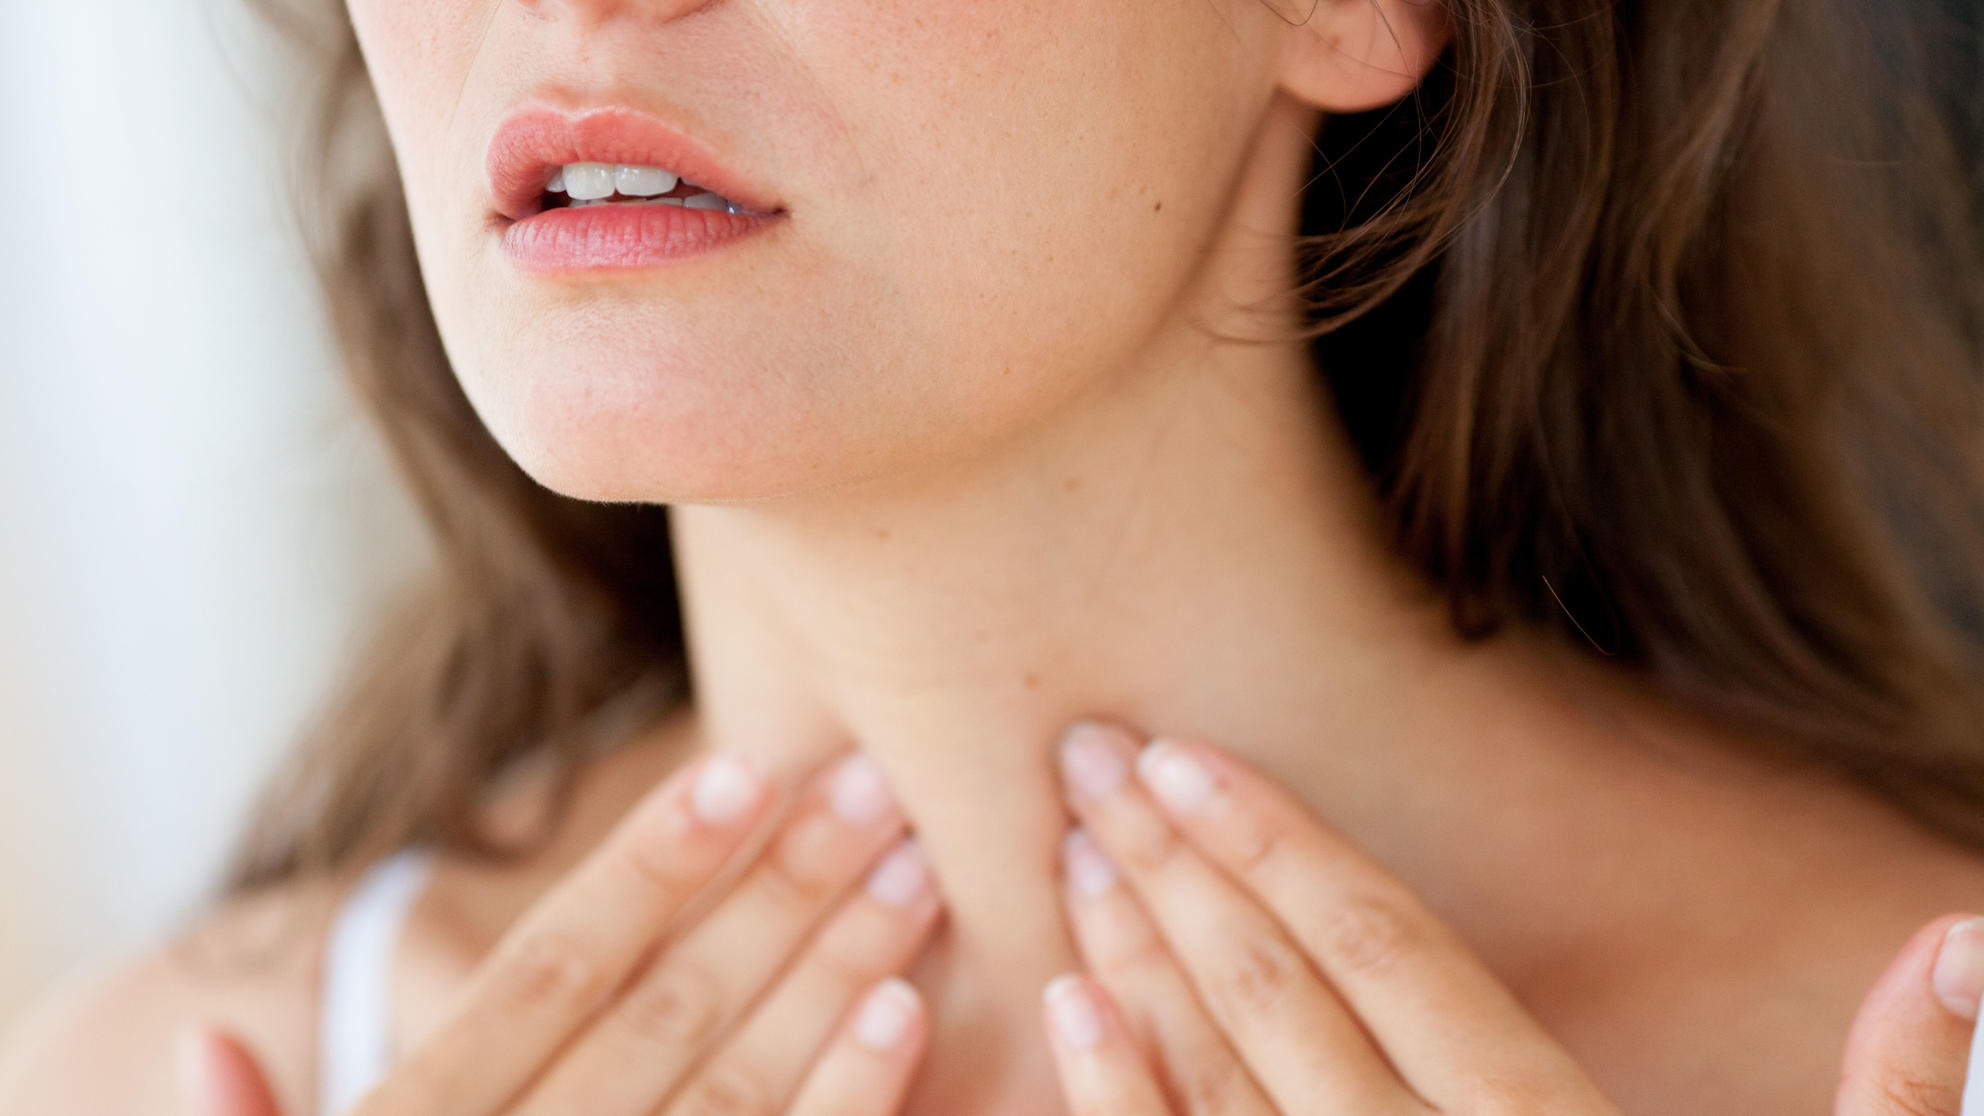 Womans Viral Photo Shows Thyroid Cancer Symptom She Completely Missed